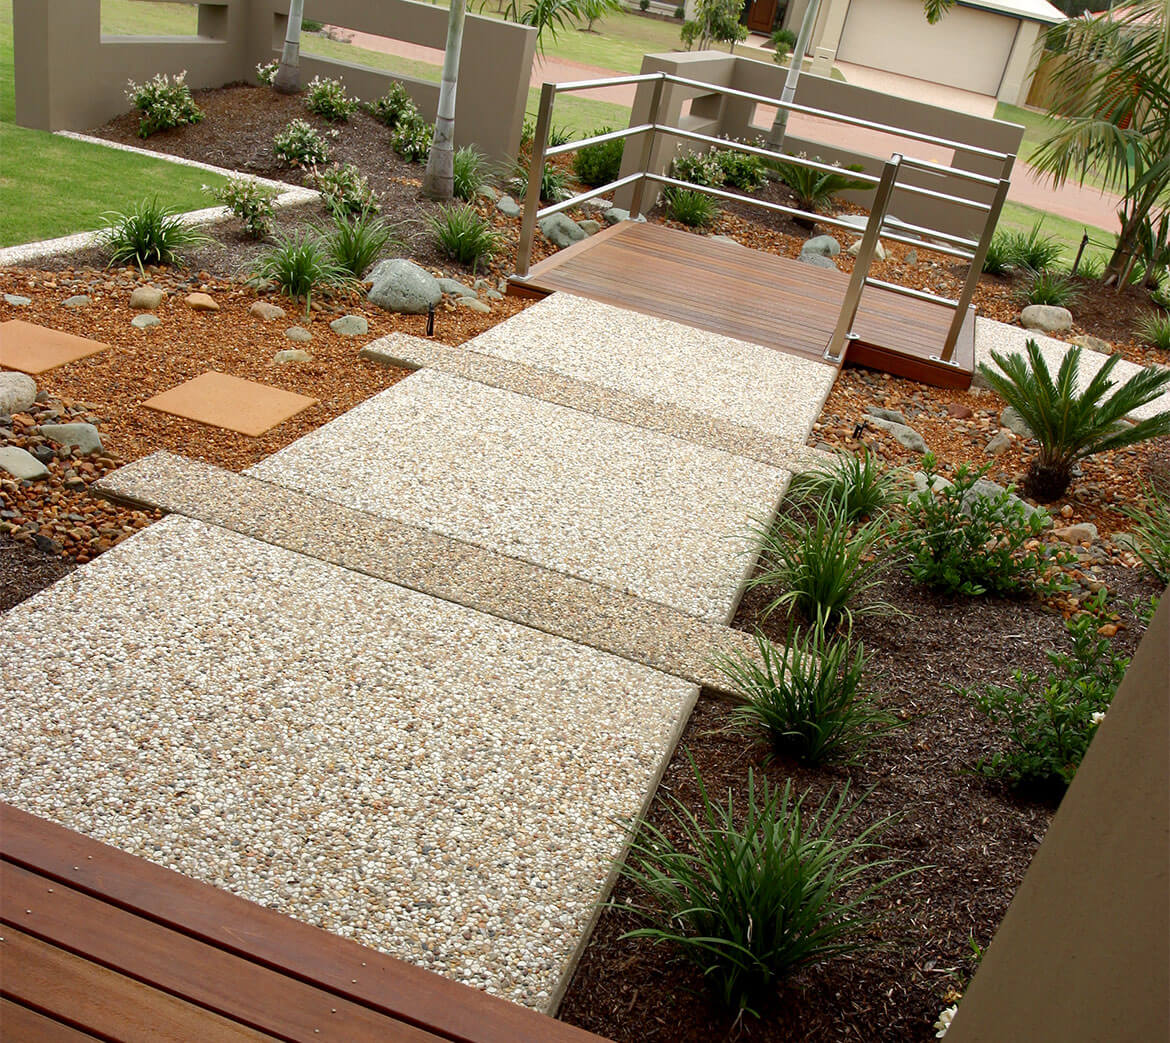 Exposed Pebble concrete footpath using different coloured aggregates